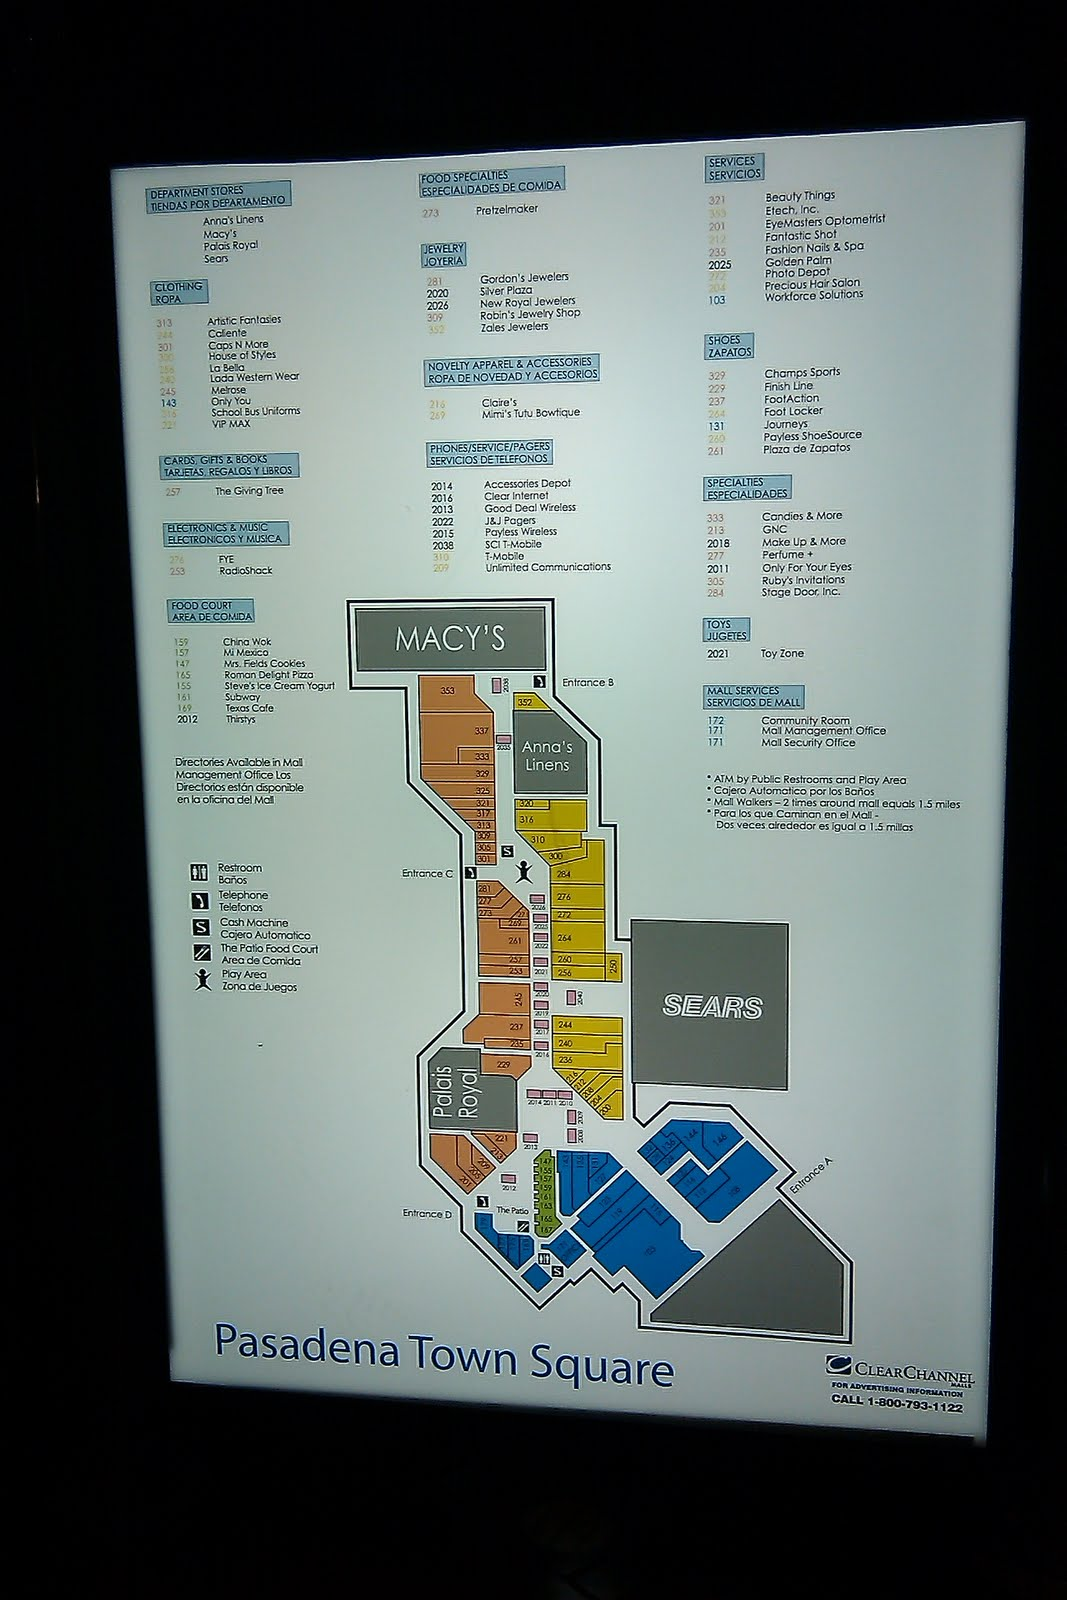 Deerbrook Mall Map | compressportnederland on